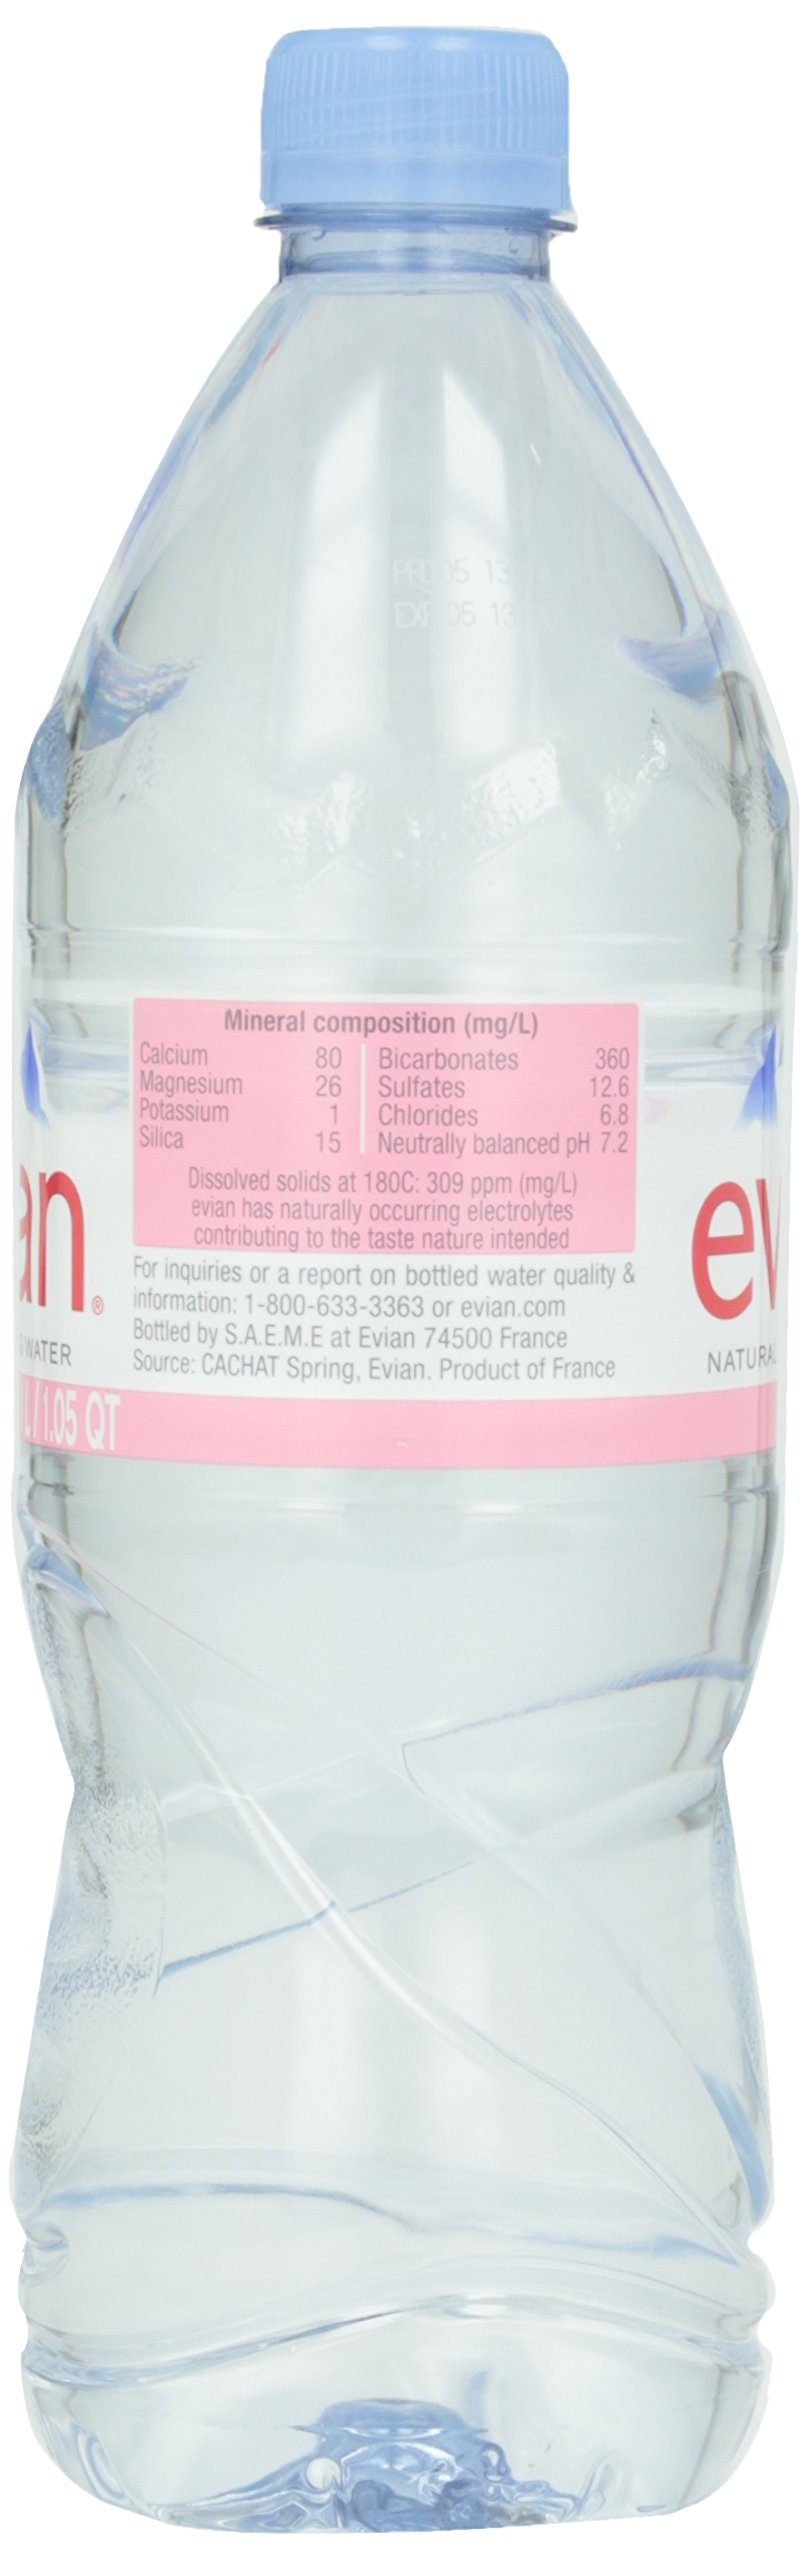 Evian Natural Spring Water, 1.0 Liter, 33.8-Ounce, 6-Count by evian (Image #5)